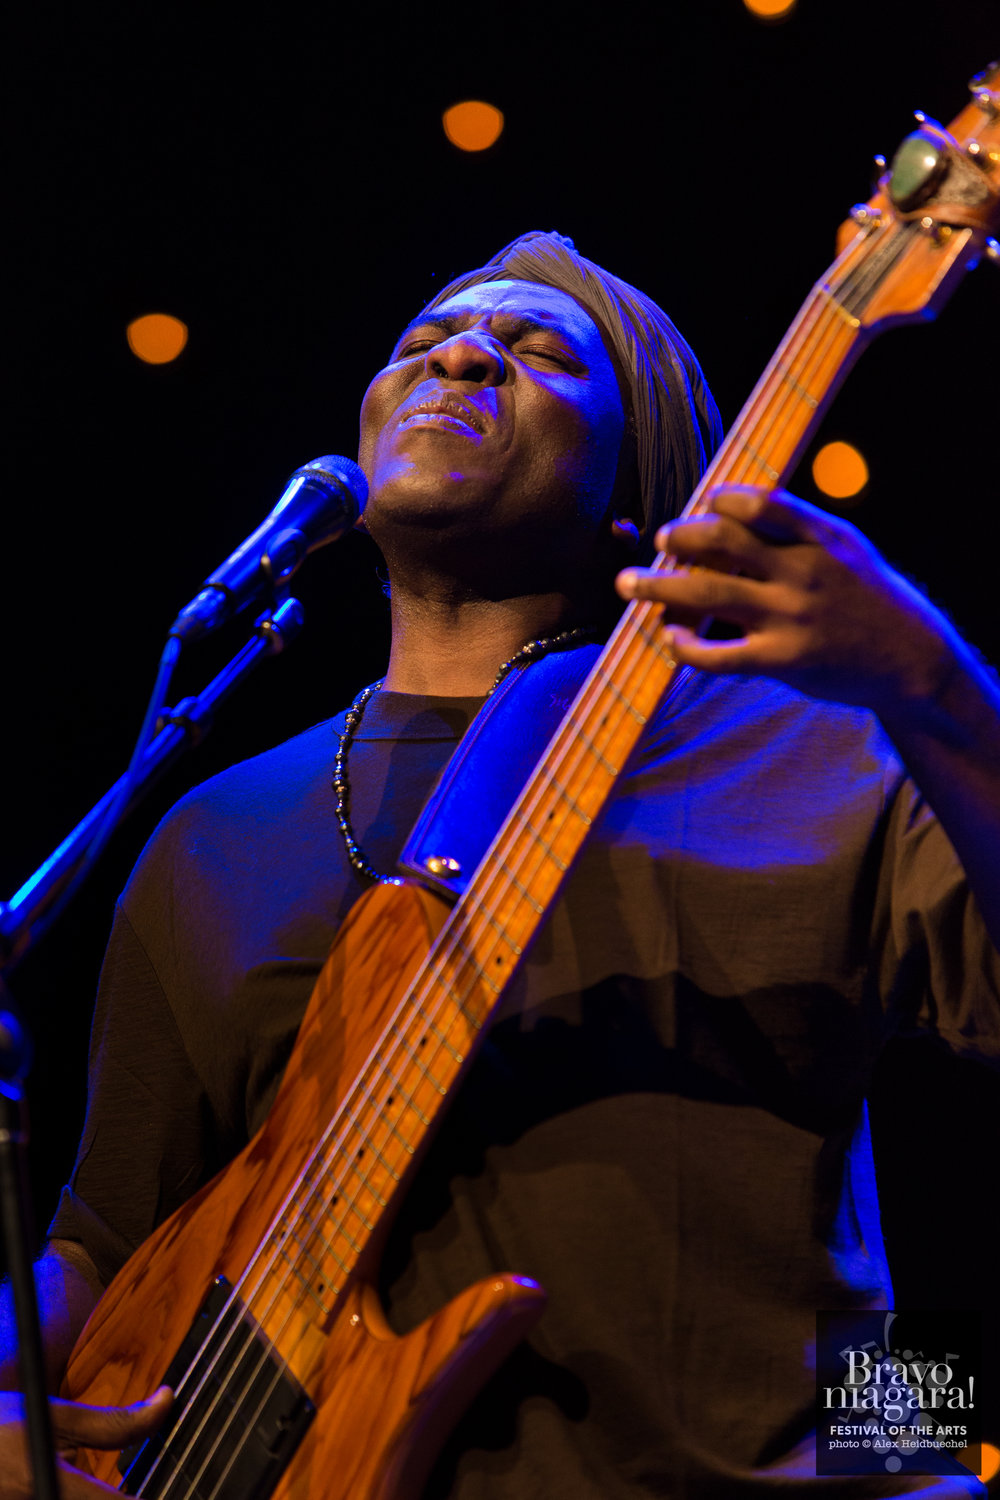 BRAVO! - Richard Bona - 2017 © Alex Heidbuechel - Flashbox Photography-20.jpg